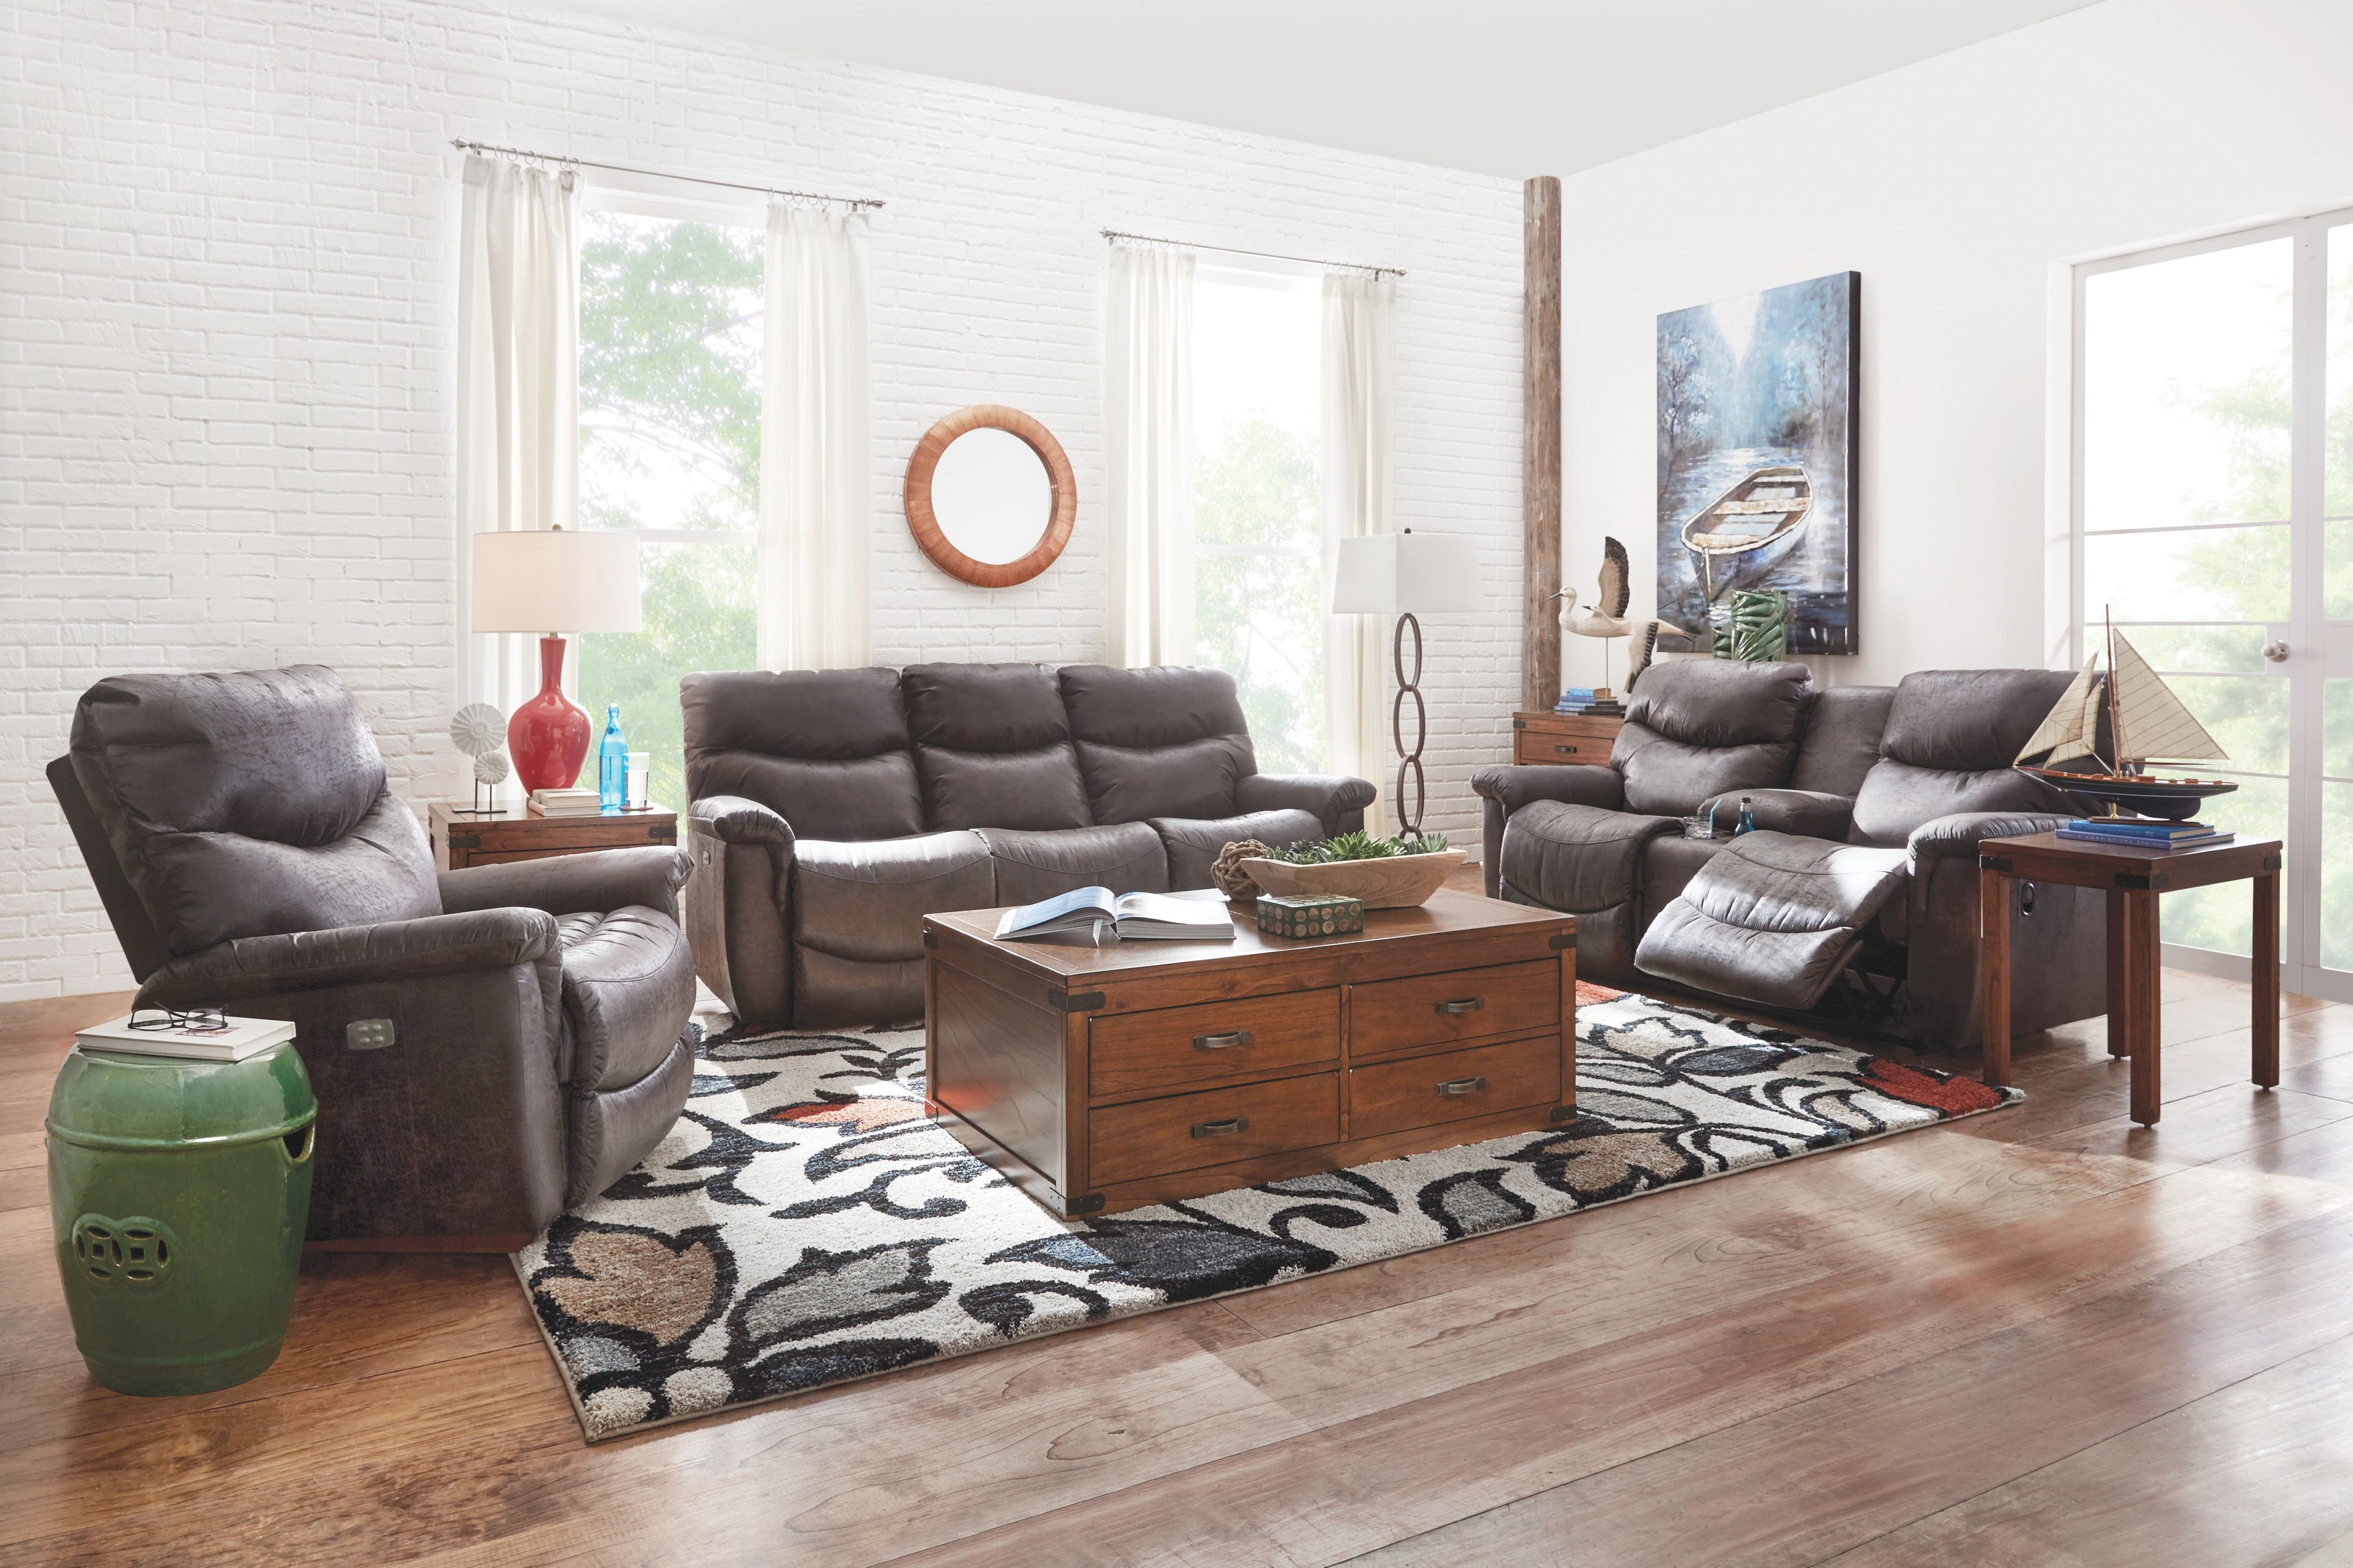 The La-Z-Boy James Collection   intended for New Lazy Boy Living Room Furniture